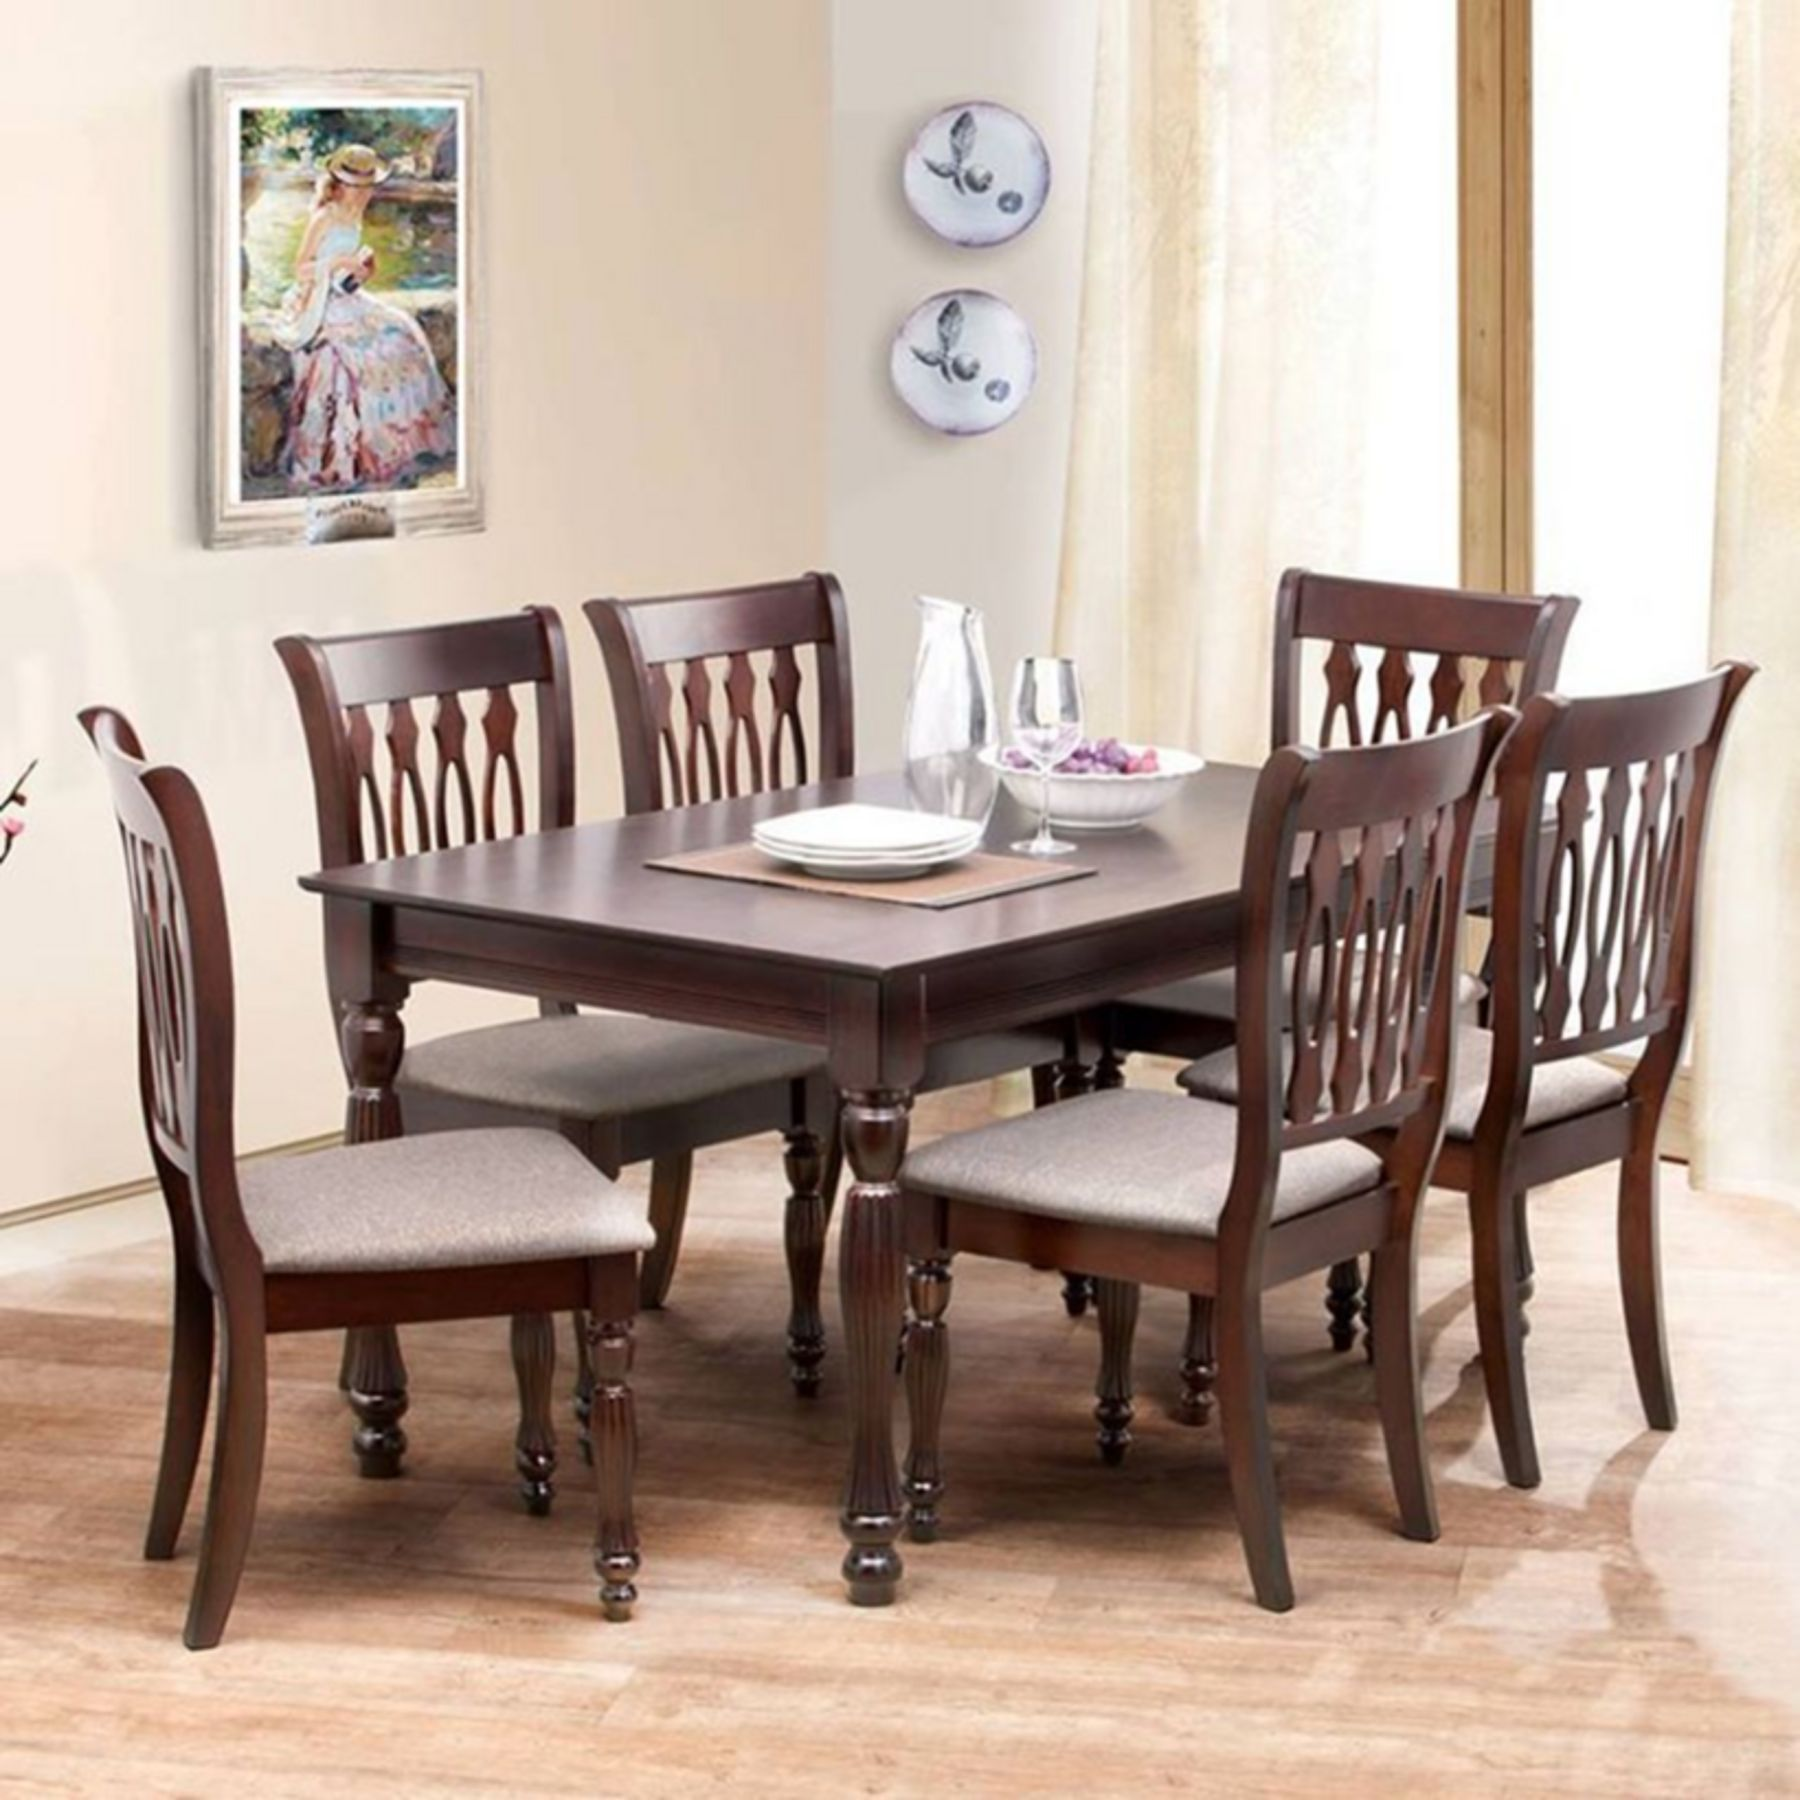 Top 12 Creative Dining Table Design Ideas To Make Your Dining Room Beautiful Dining Table Design Dinning Table Design Beautiful Dining Rooms